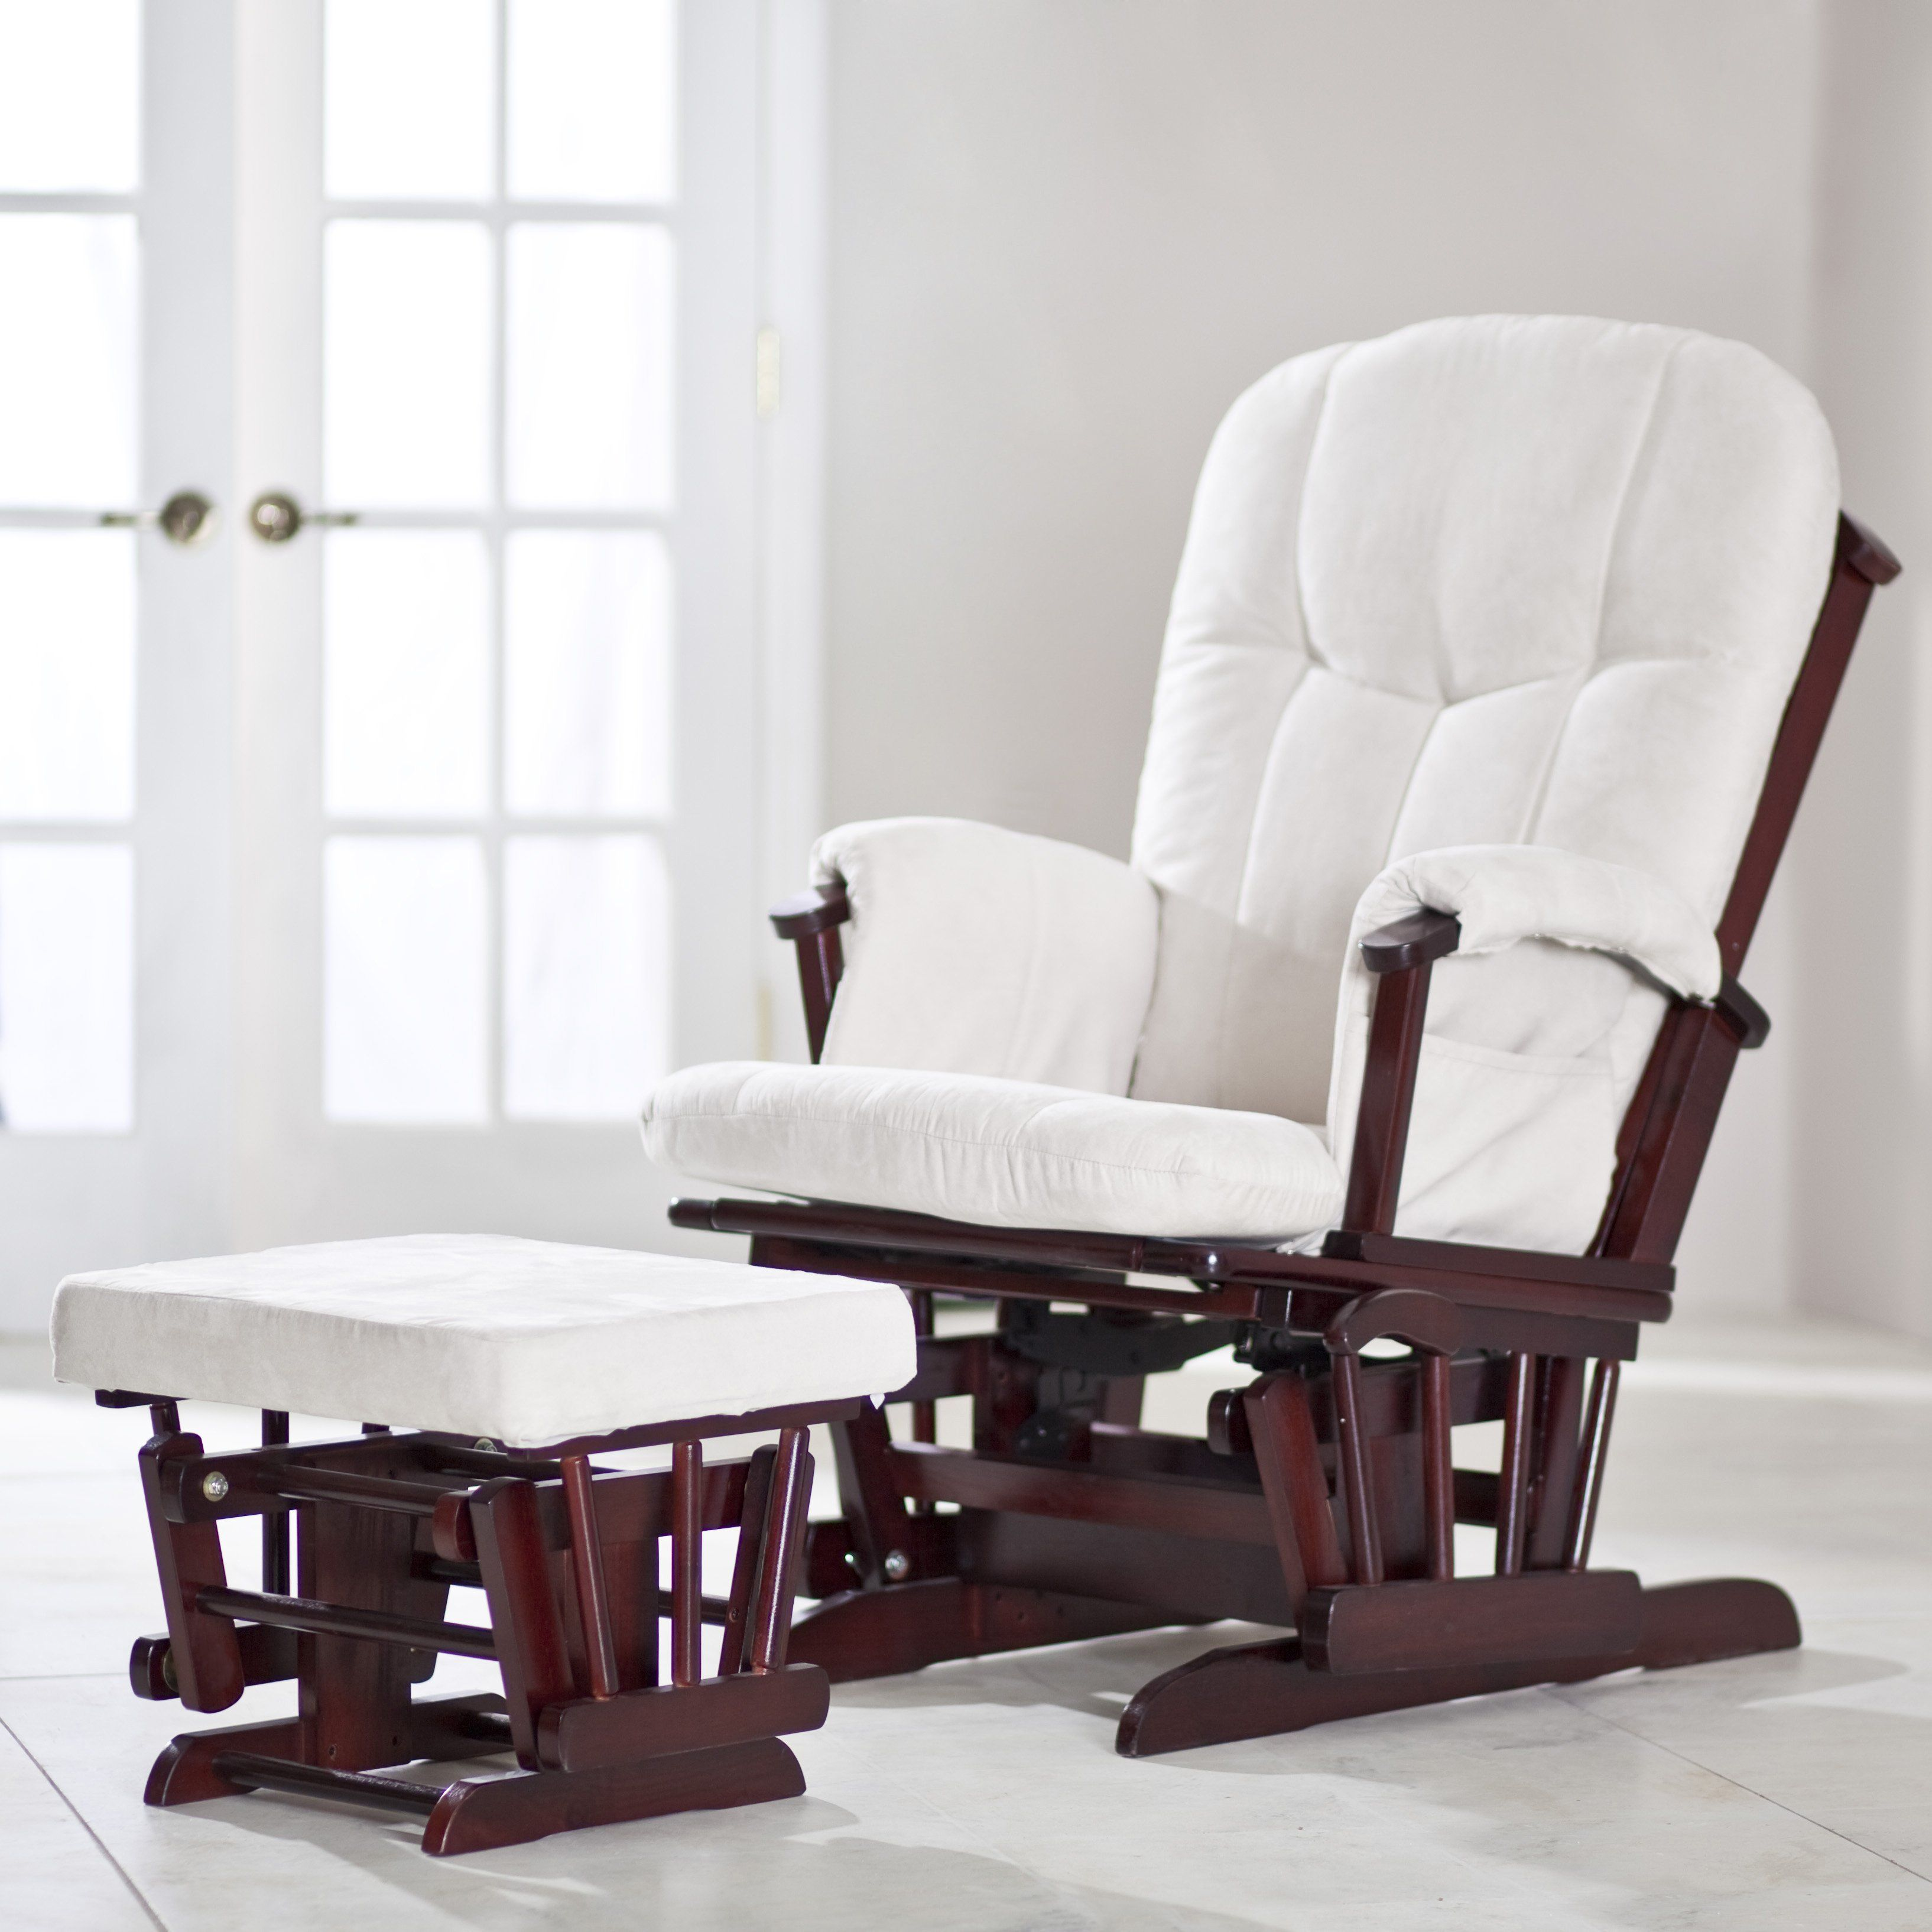 Amish Four Post Gliding Rocker With Ottoman Glider Rocking Chair